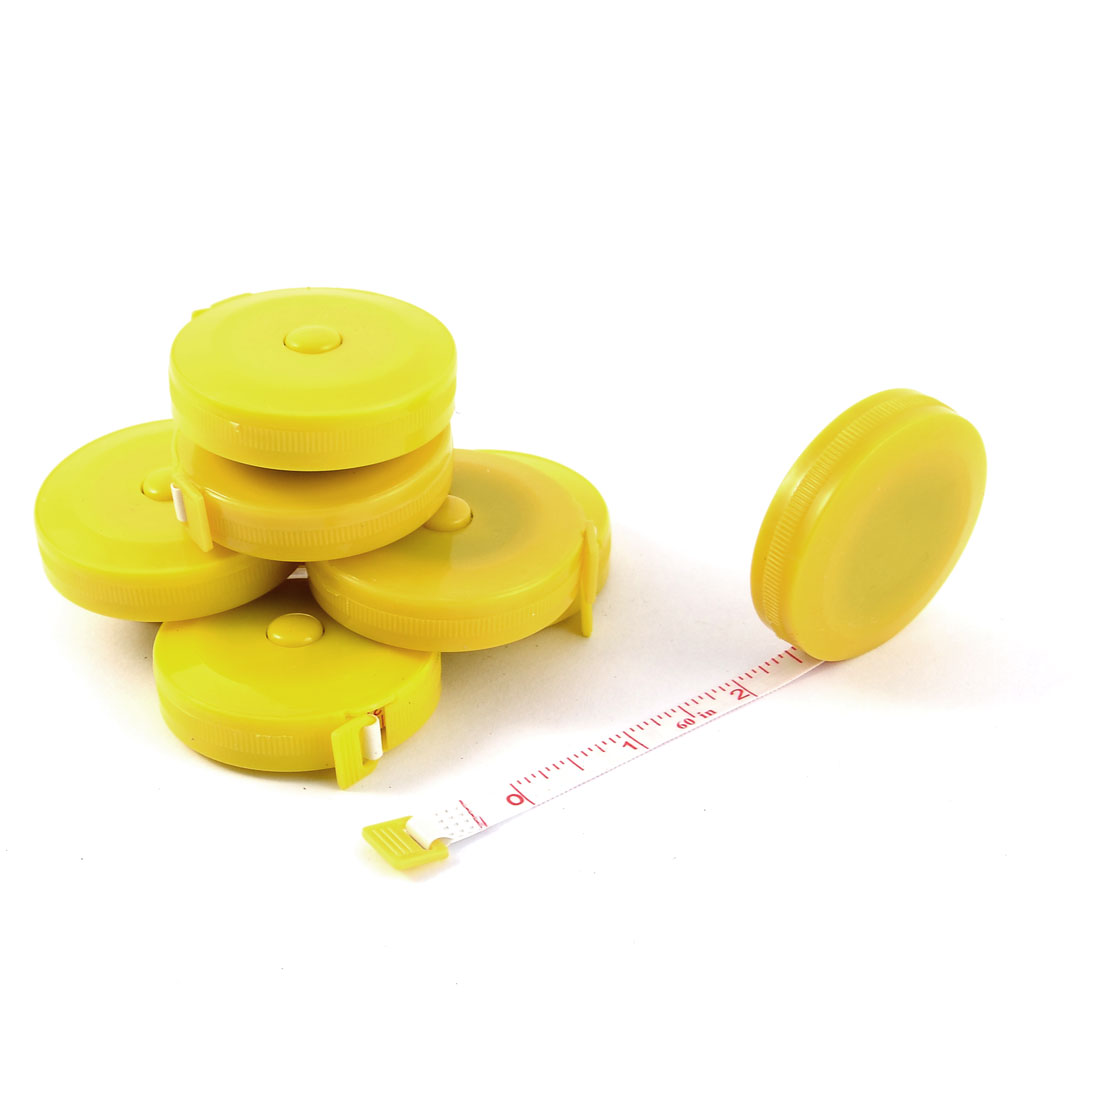 Tailor Sewing Press Button Retractable Measuring Tape Ruler Yellow 8pcs